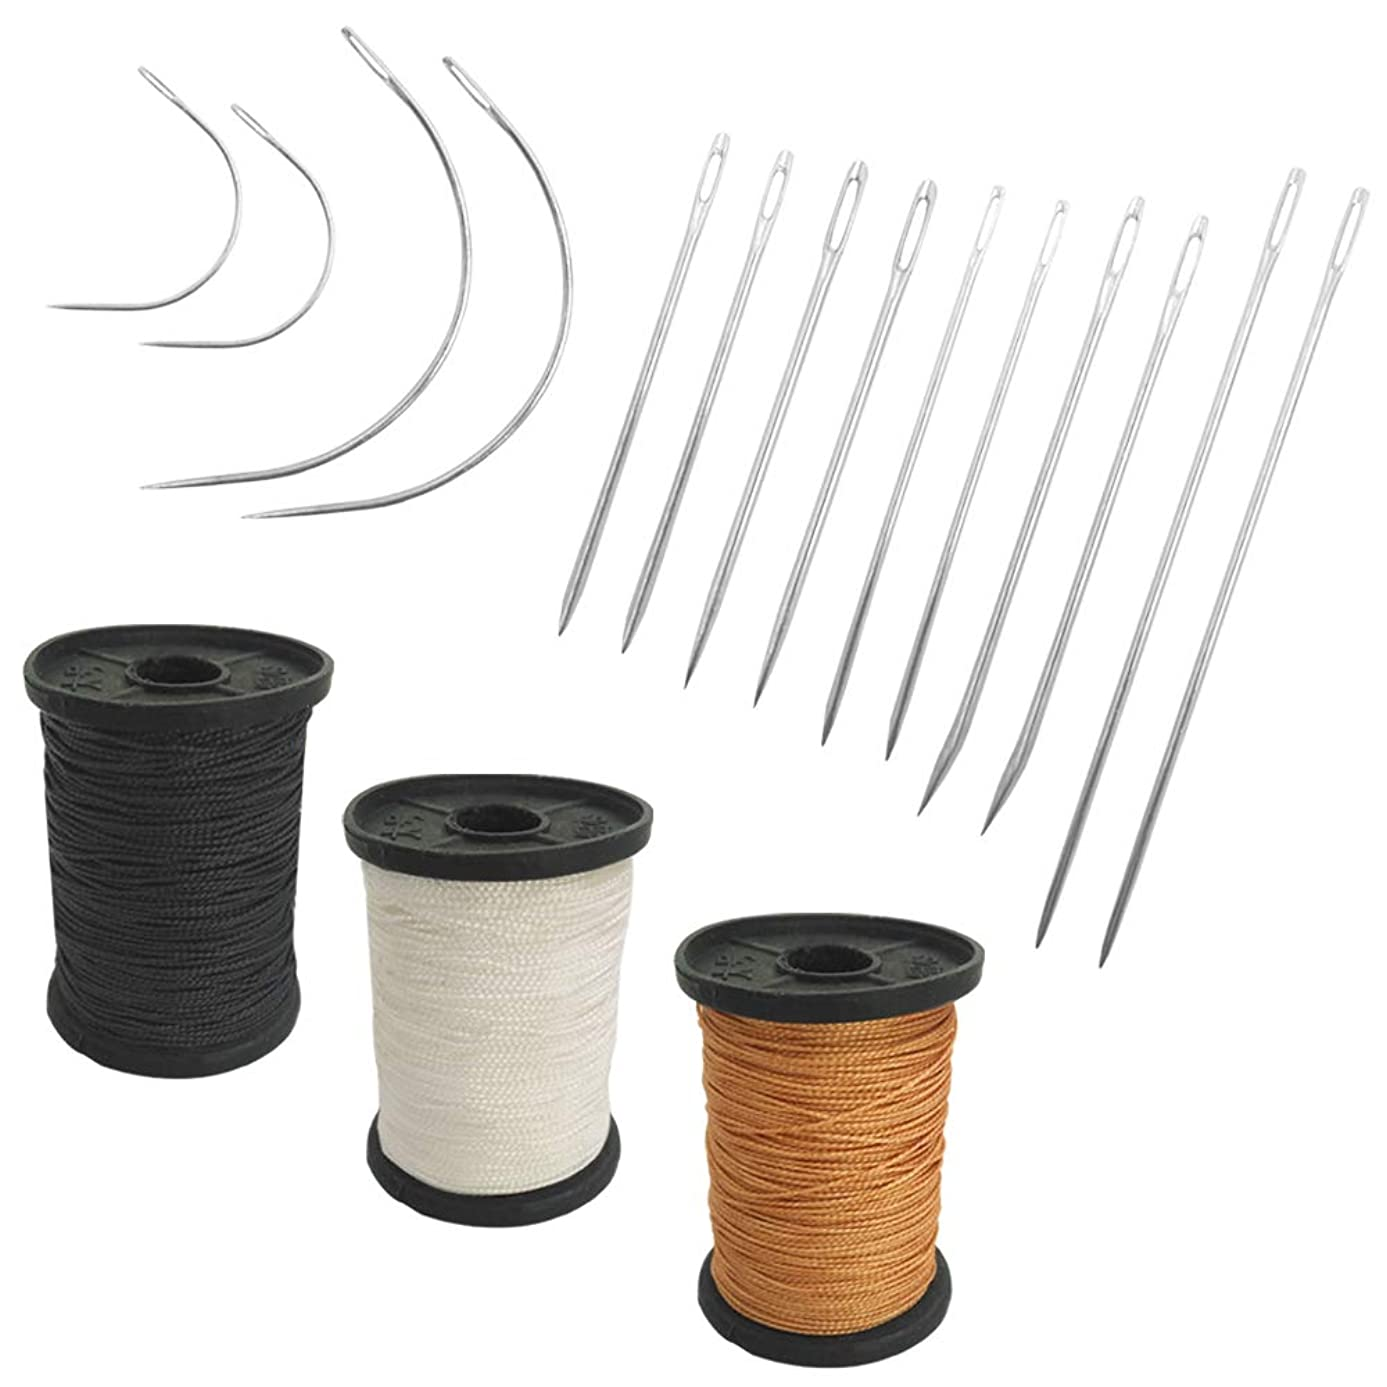 Set of 17 Heavy Duty Household Hand Needles and Extra Strong Upholstery Thread, SourceTon 7 Styles of Leather Canvas Sewing Needles and 3 Colors Nylon Thread (50 Yard of Each Thread)